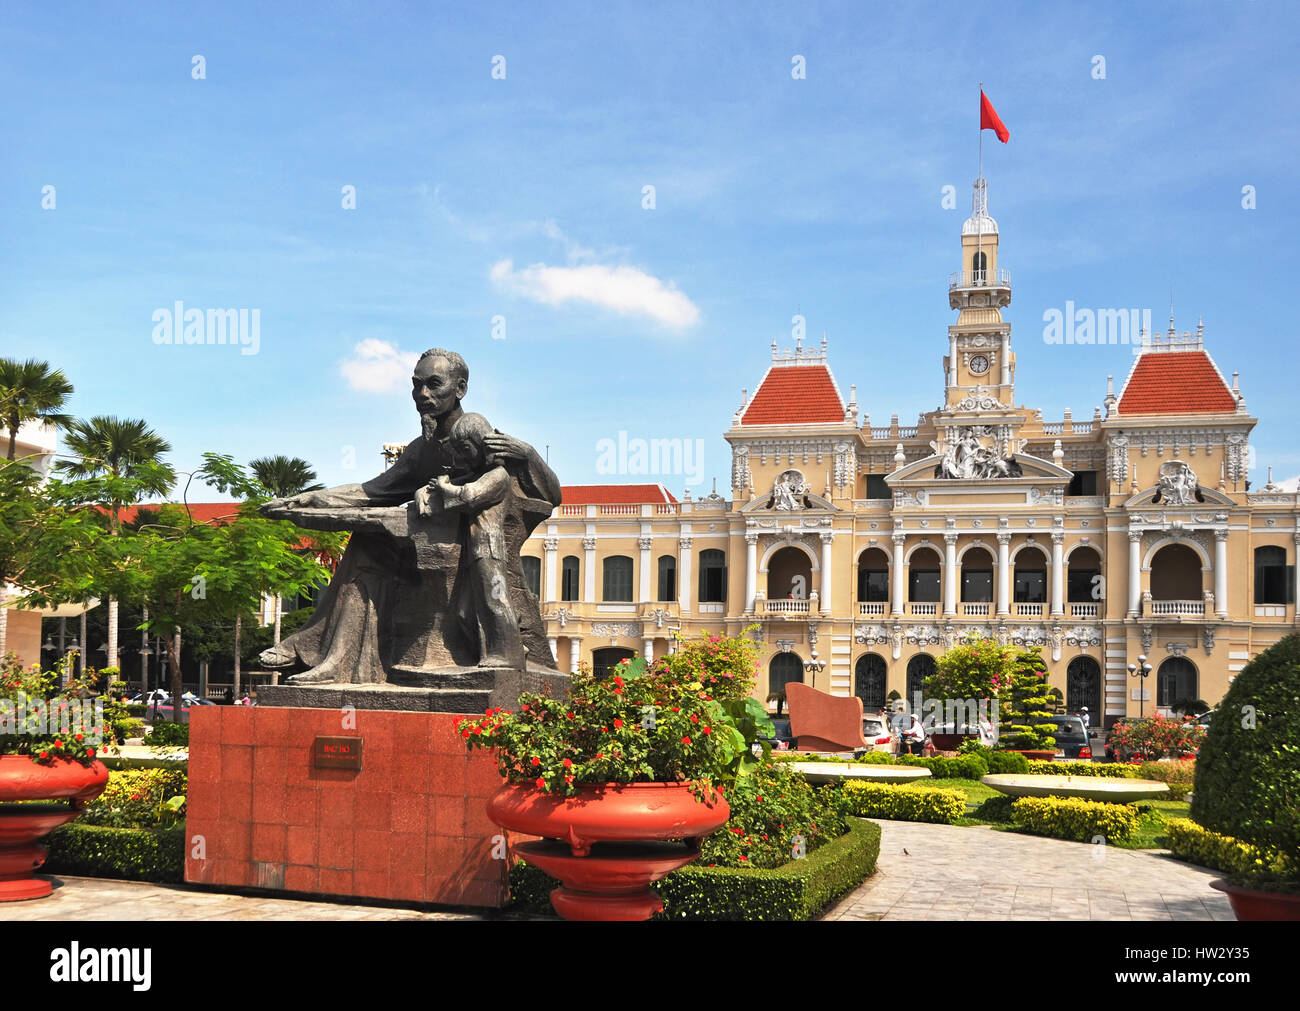 Ho Chi Minh City, Vietnam - June 08,2011: A statue of Vietnam's revered leader Ho Chi Minh (also called Uncle - Stock Image